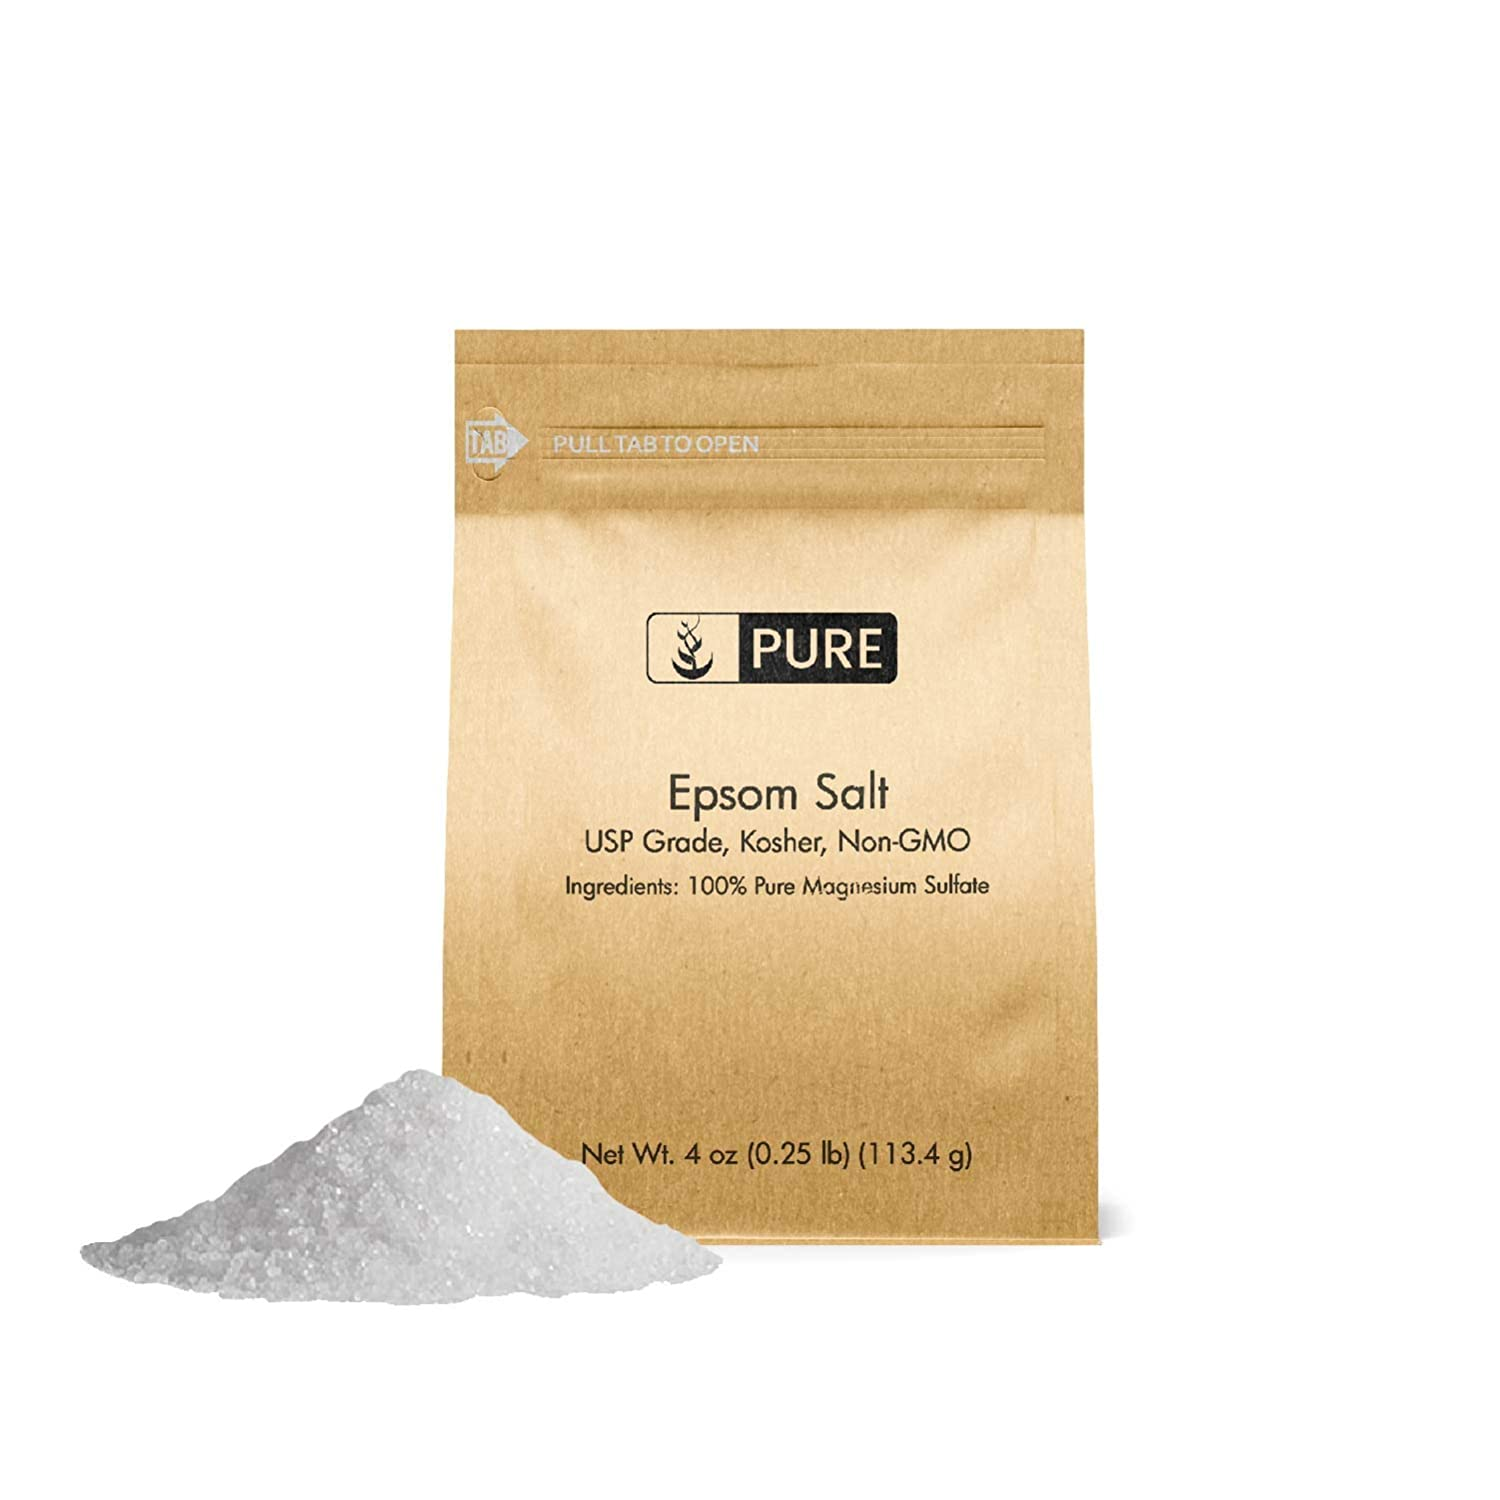 Epsom Salt (4 oz.) by Pure Organic Ingredients, Magnesium Sulfate Soaking Solution, All-Natural, Highest Quality & Purity, USP Grade